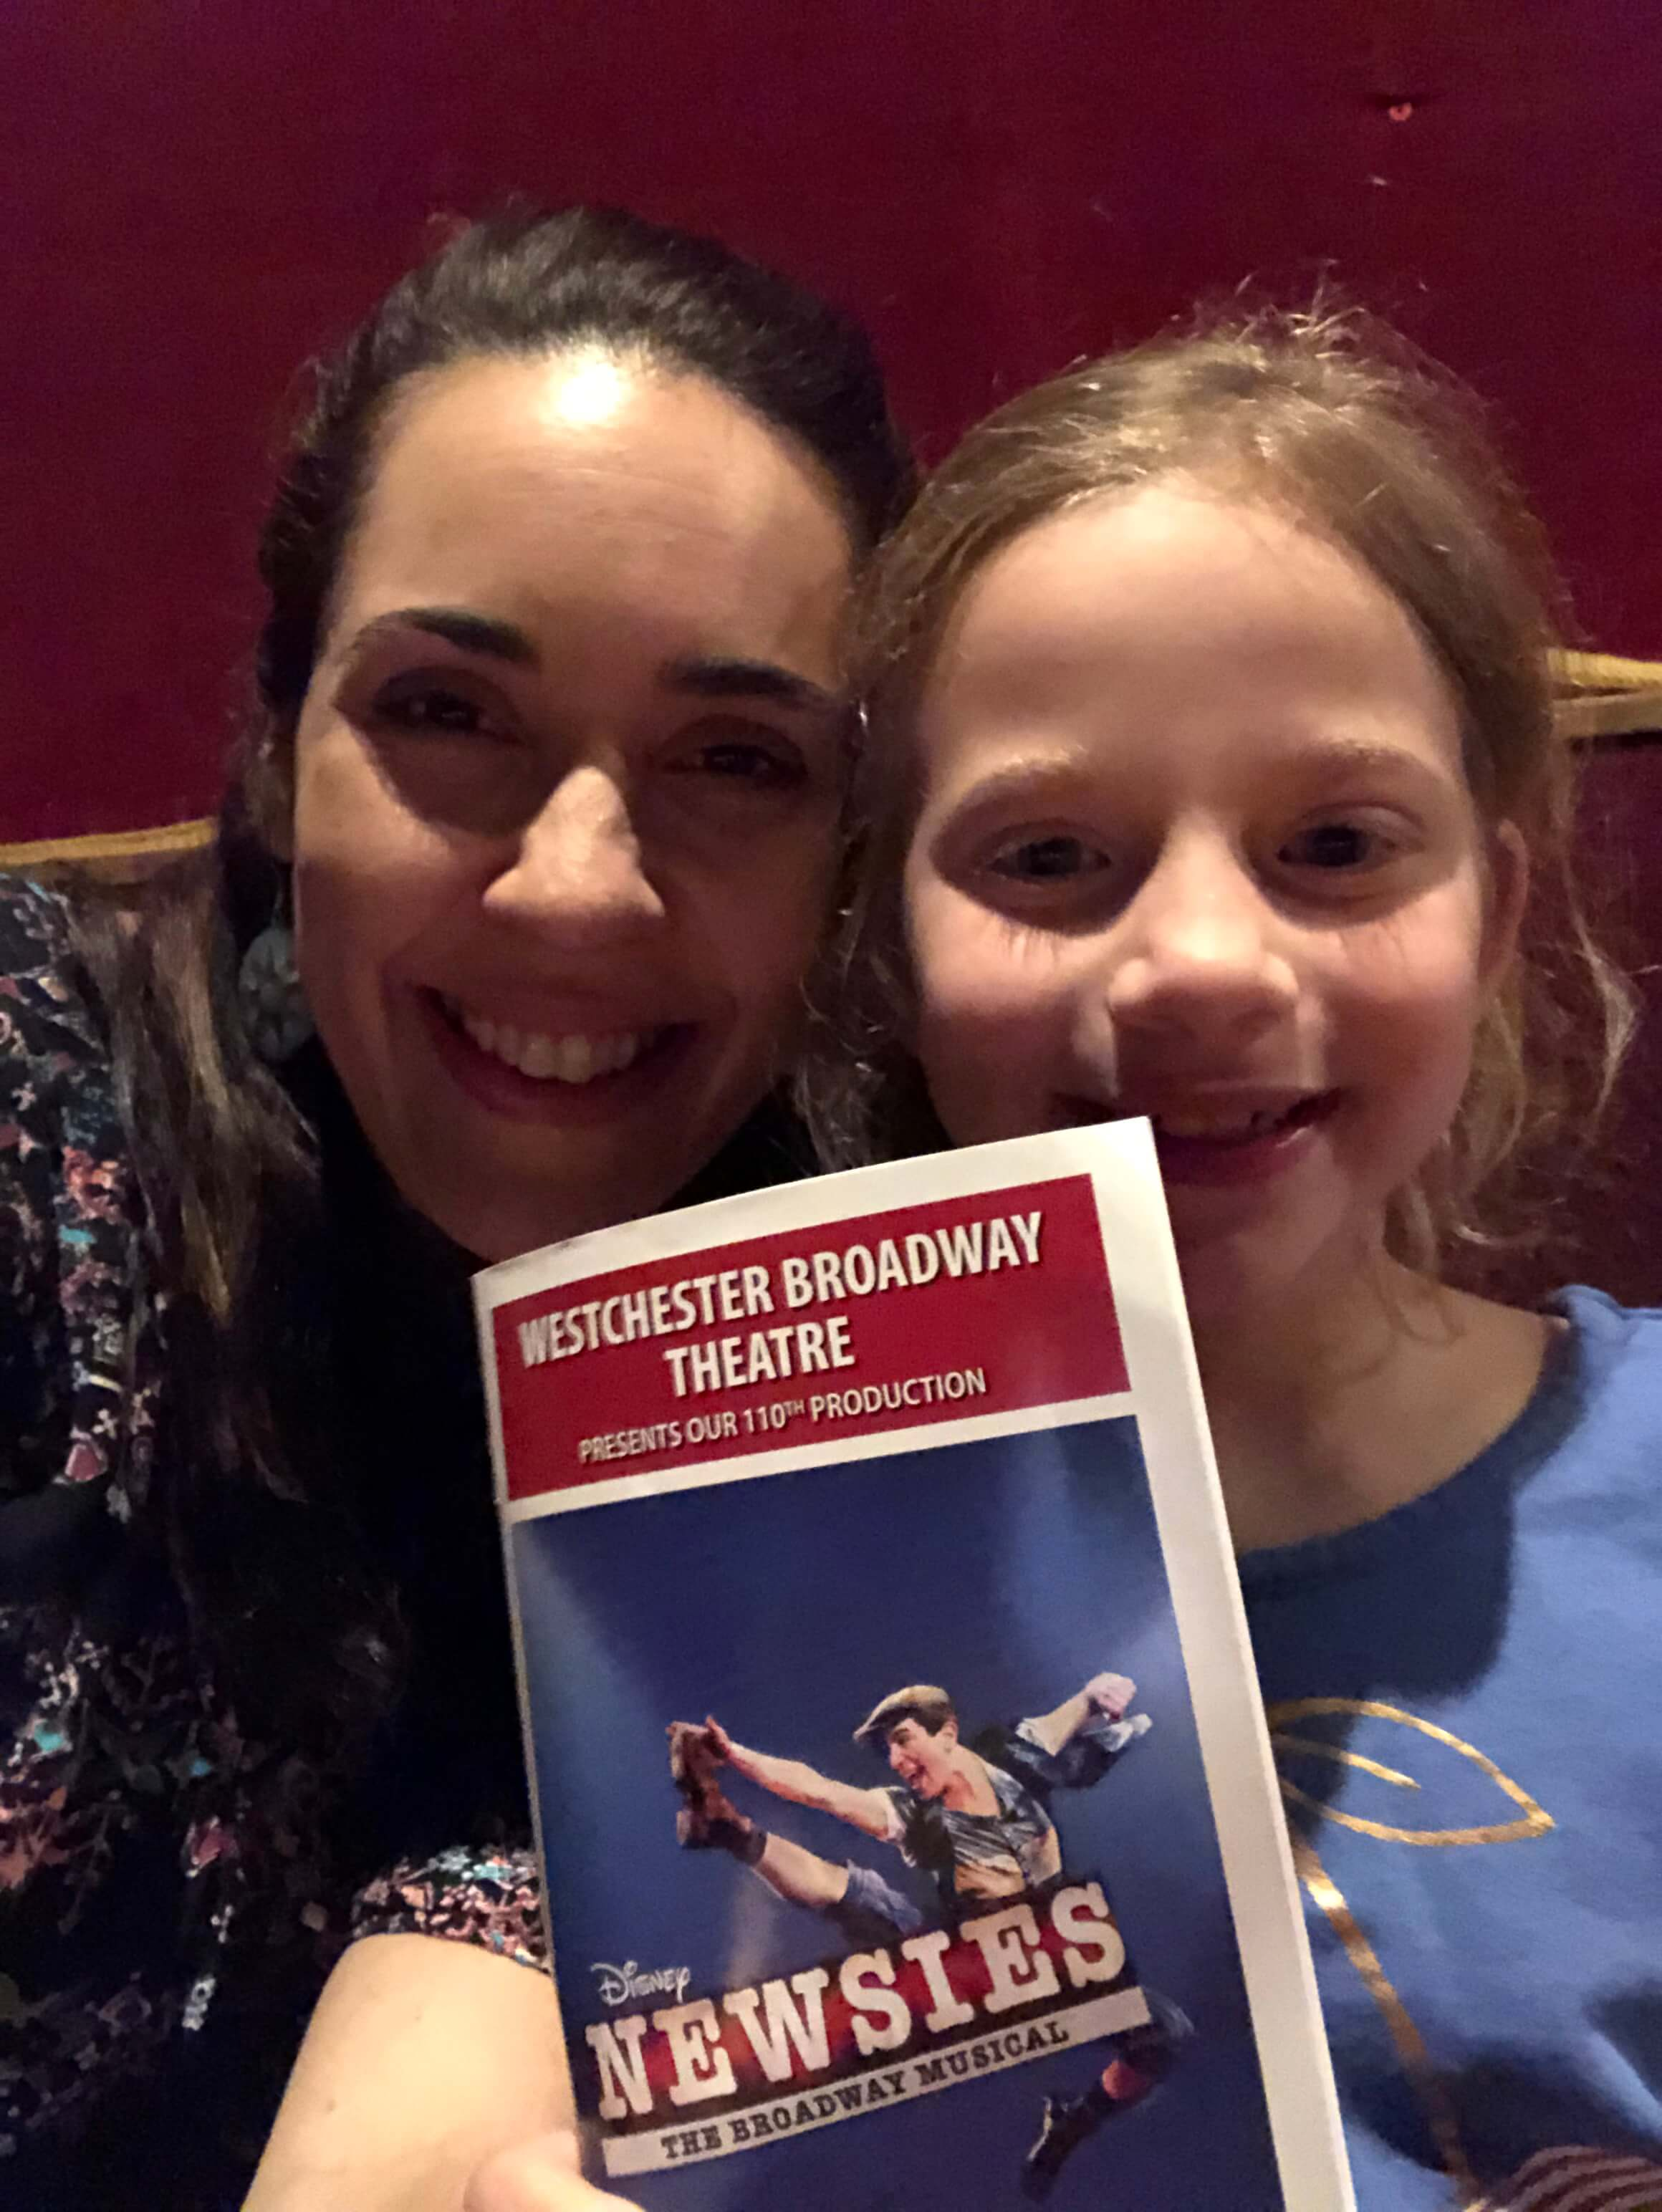 Must see family fun at Newsies with the Westchester Broadway Theater